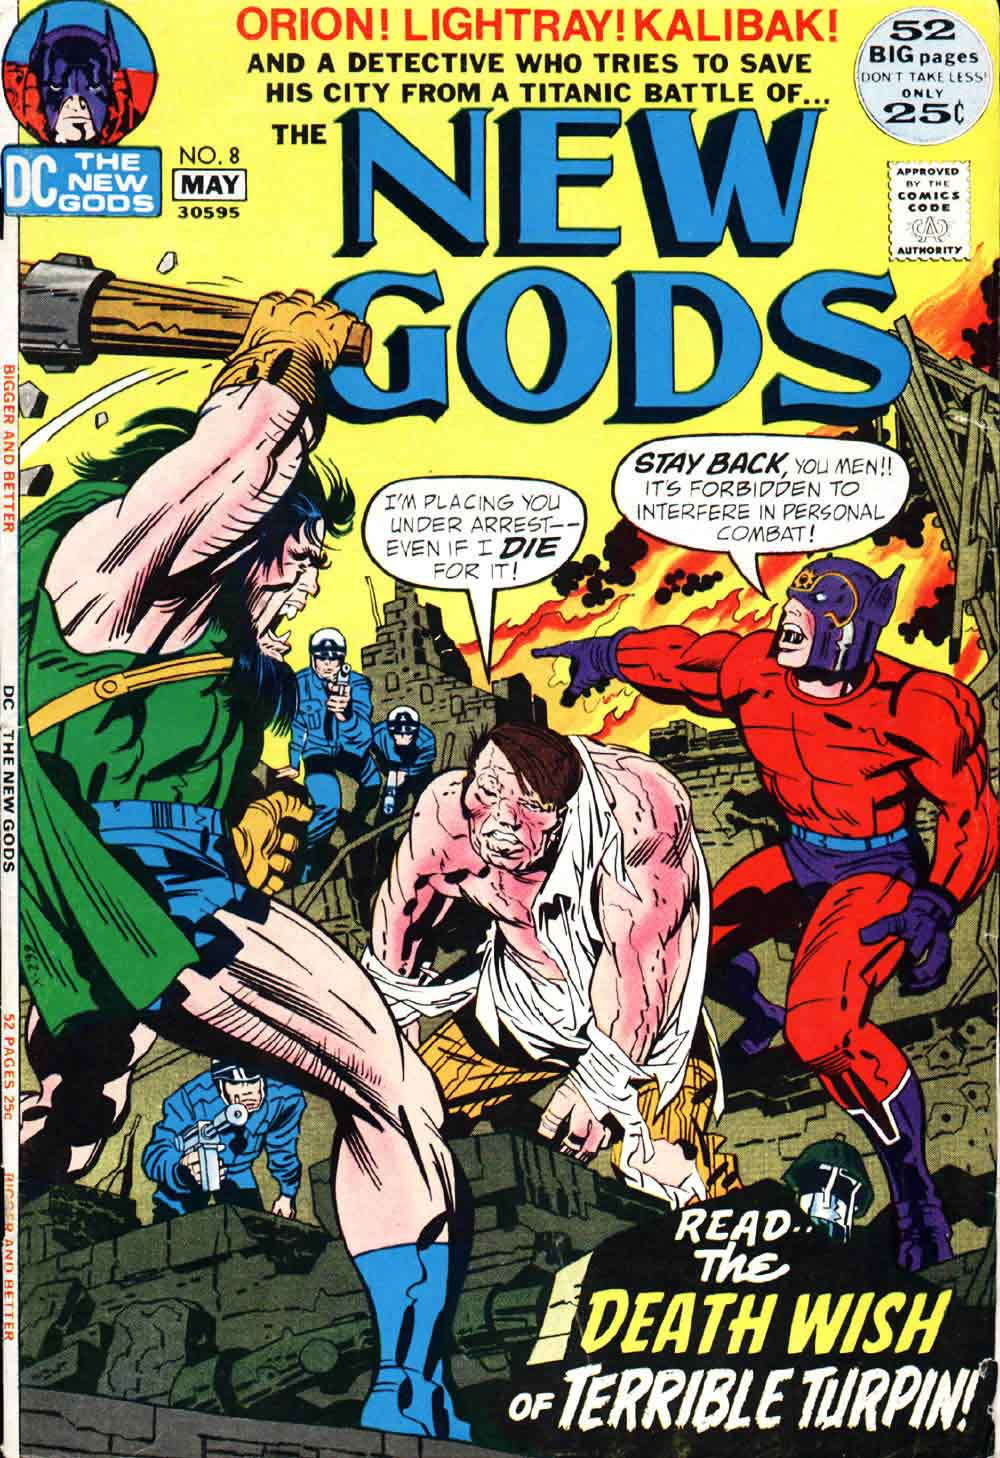 New Gods v1 #8 dc bronze age comic book cover art by Jack Kirby